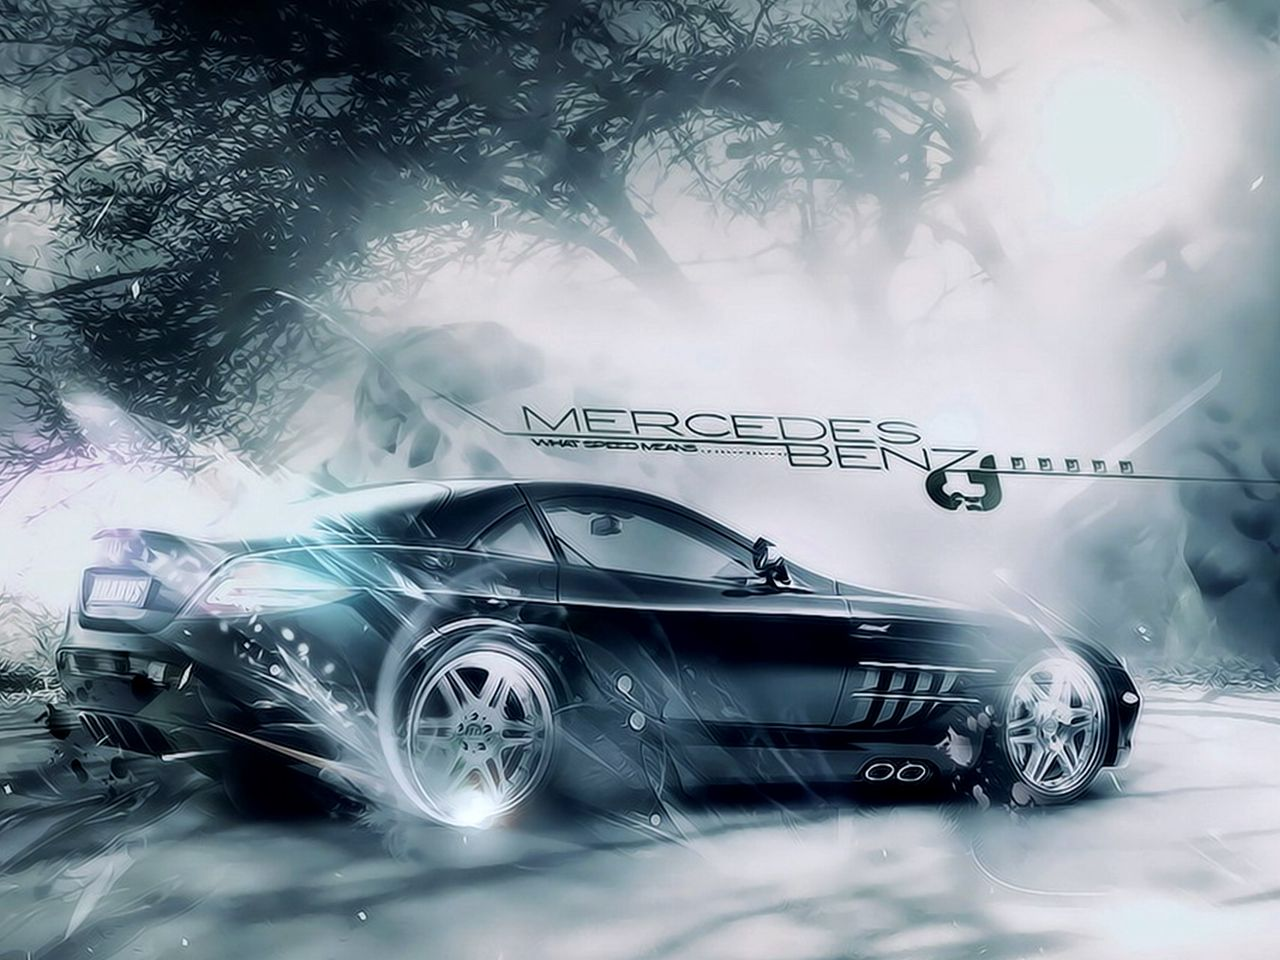 background images hd free download car